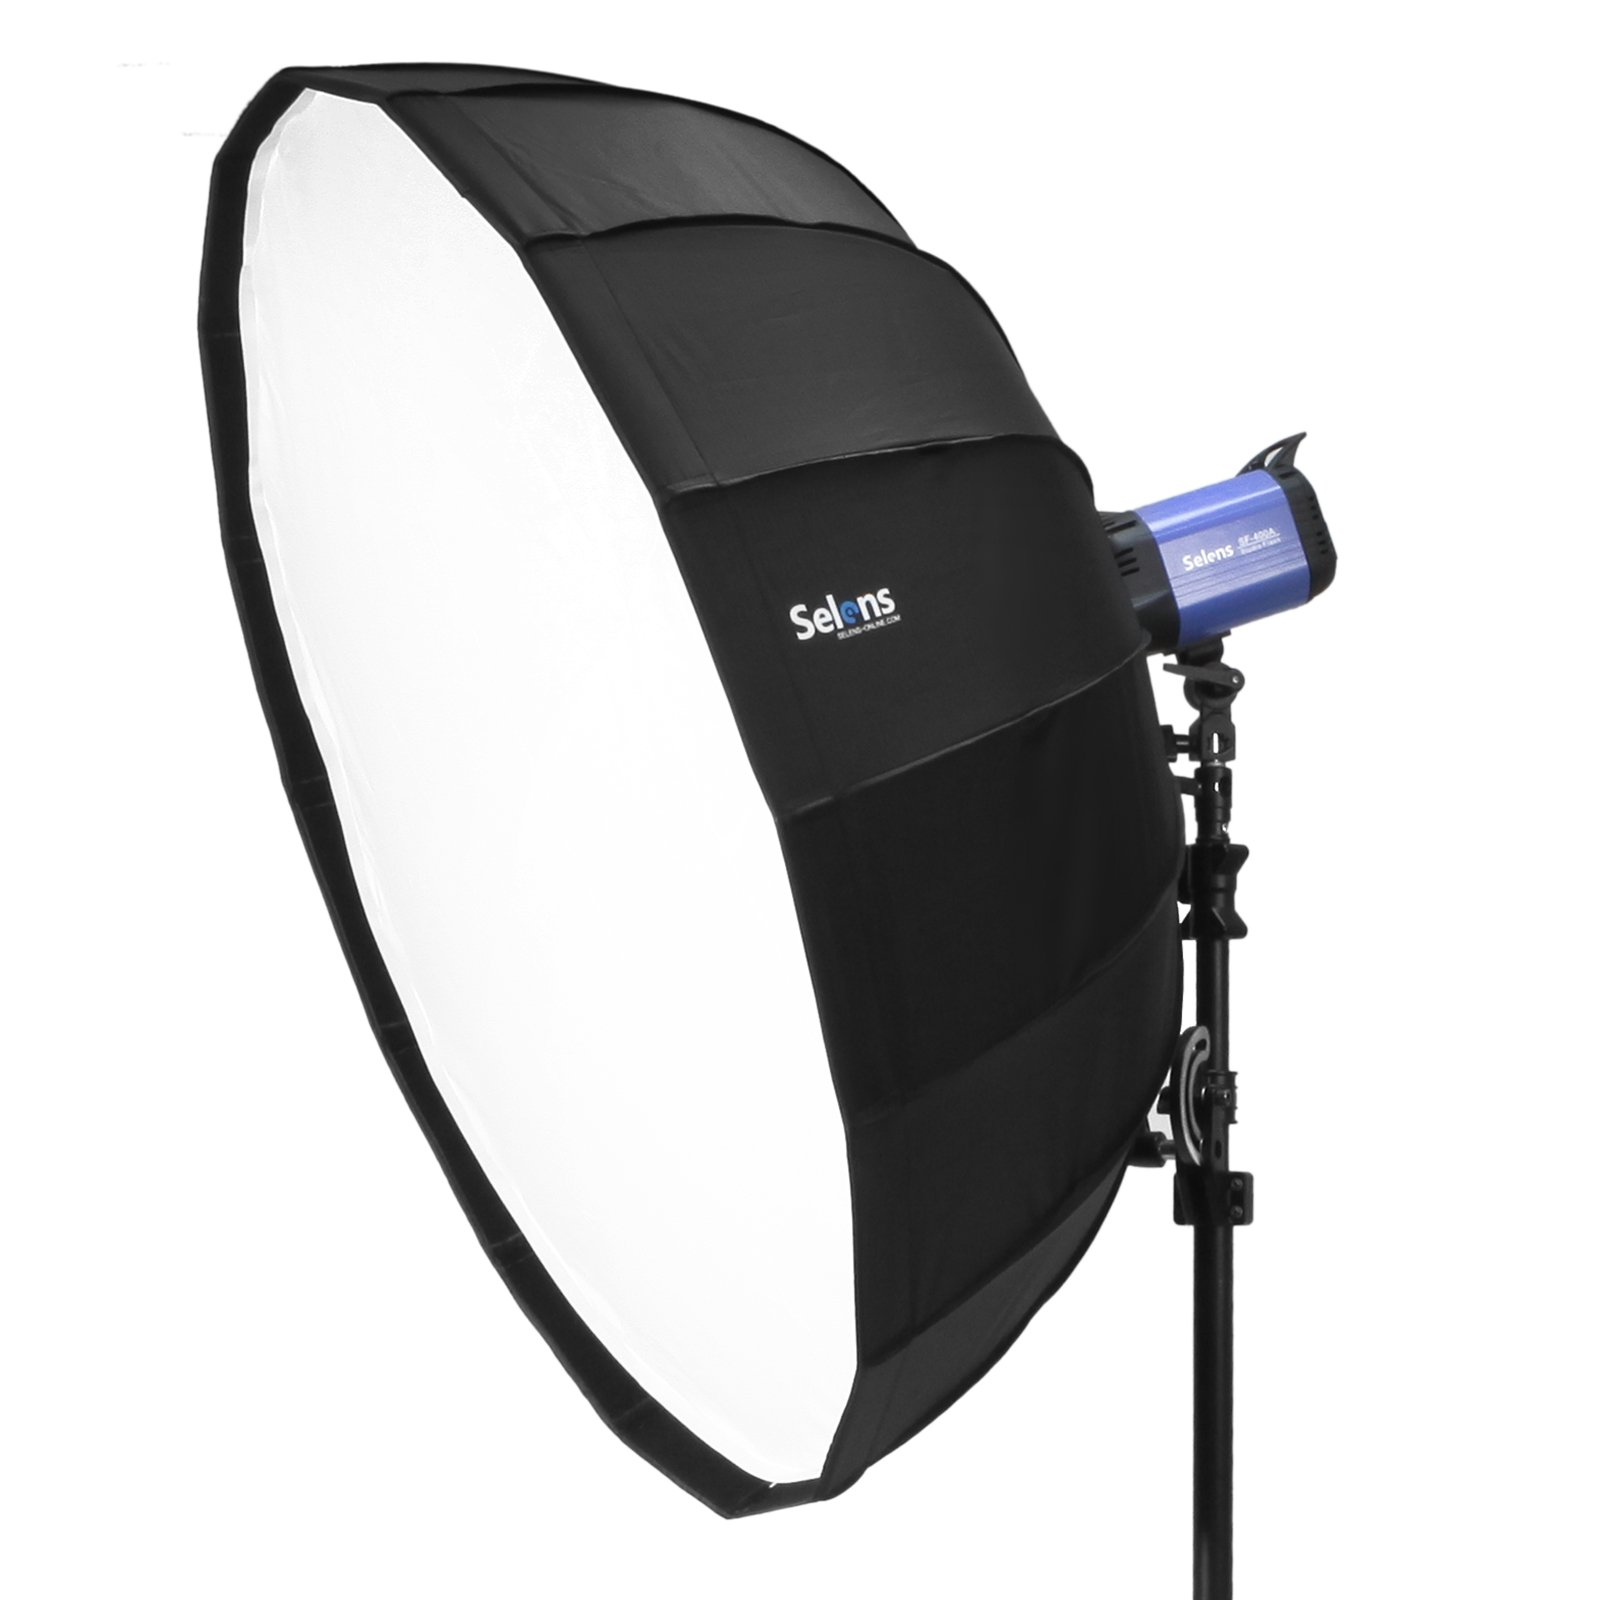 Selens 42''/105cm Hexadecagon Portable Quick Folding Speedlite, Studio Flash, Speedlight Umbrella Softbox with Bowens Speedring Mount for Photo Studio Lighting Flash Light by Selens (Image #1)